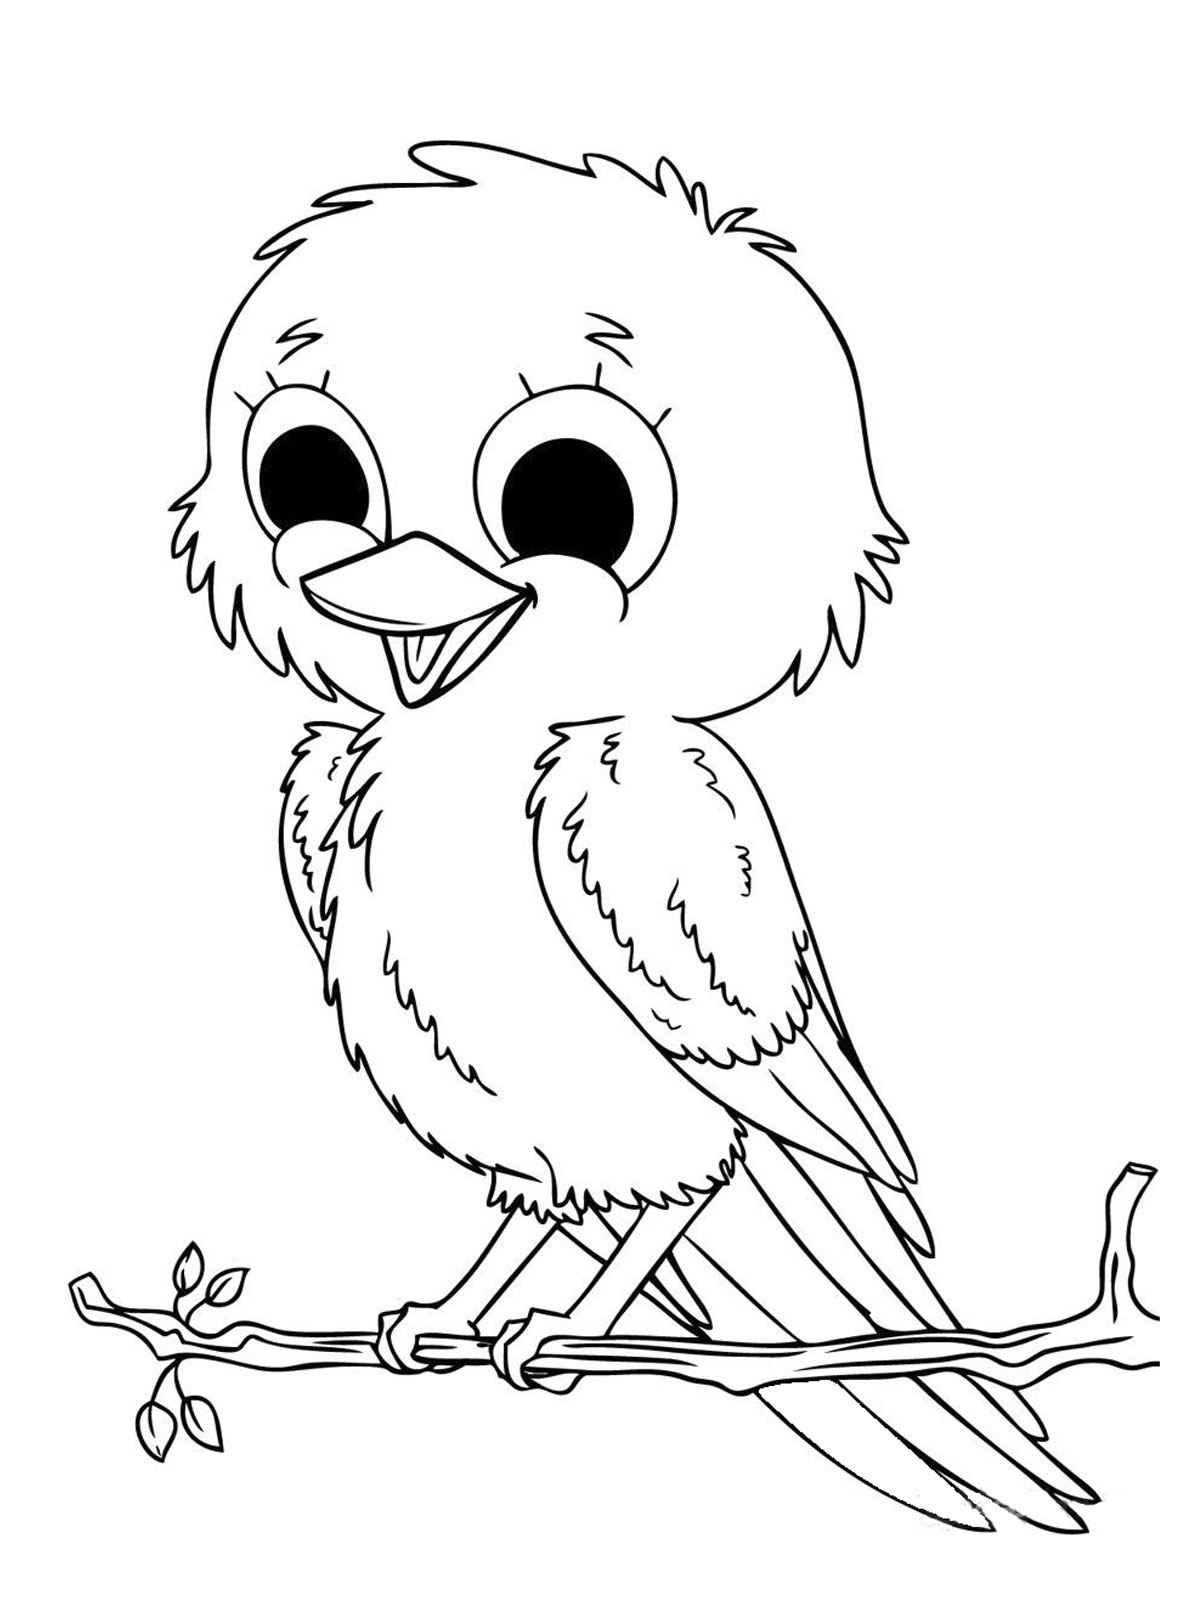 Animals Coloring Pages - Coloring Kids